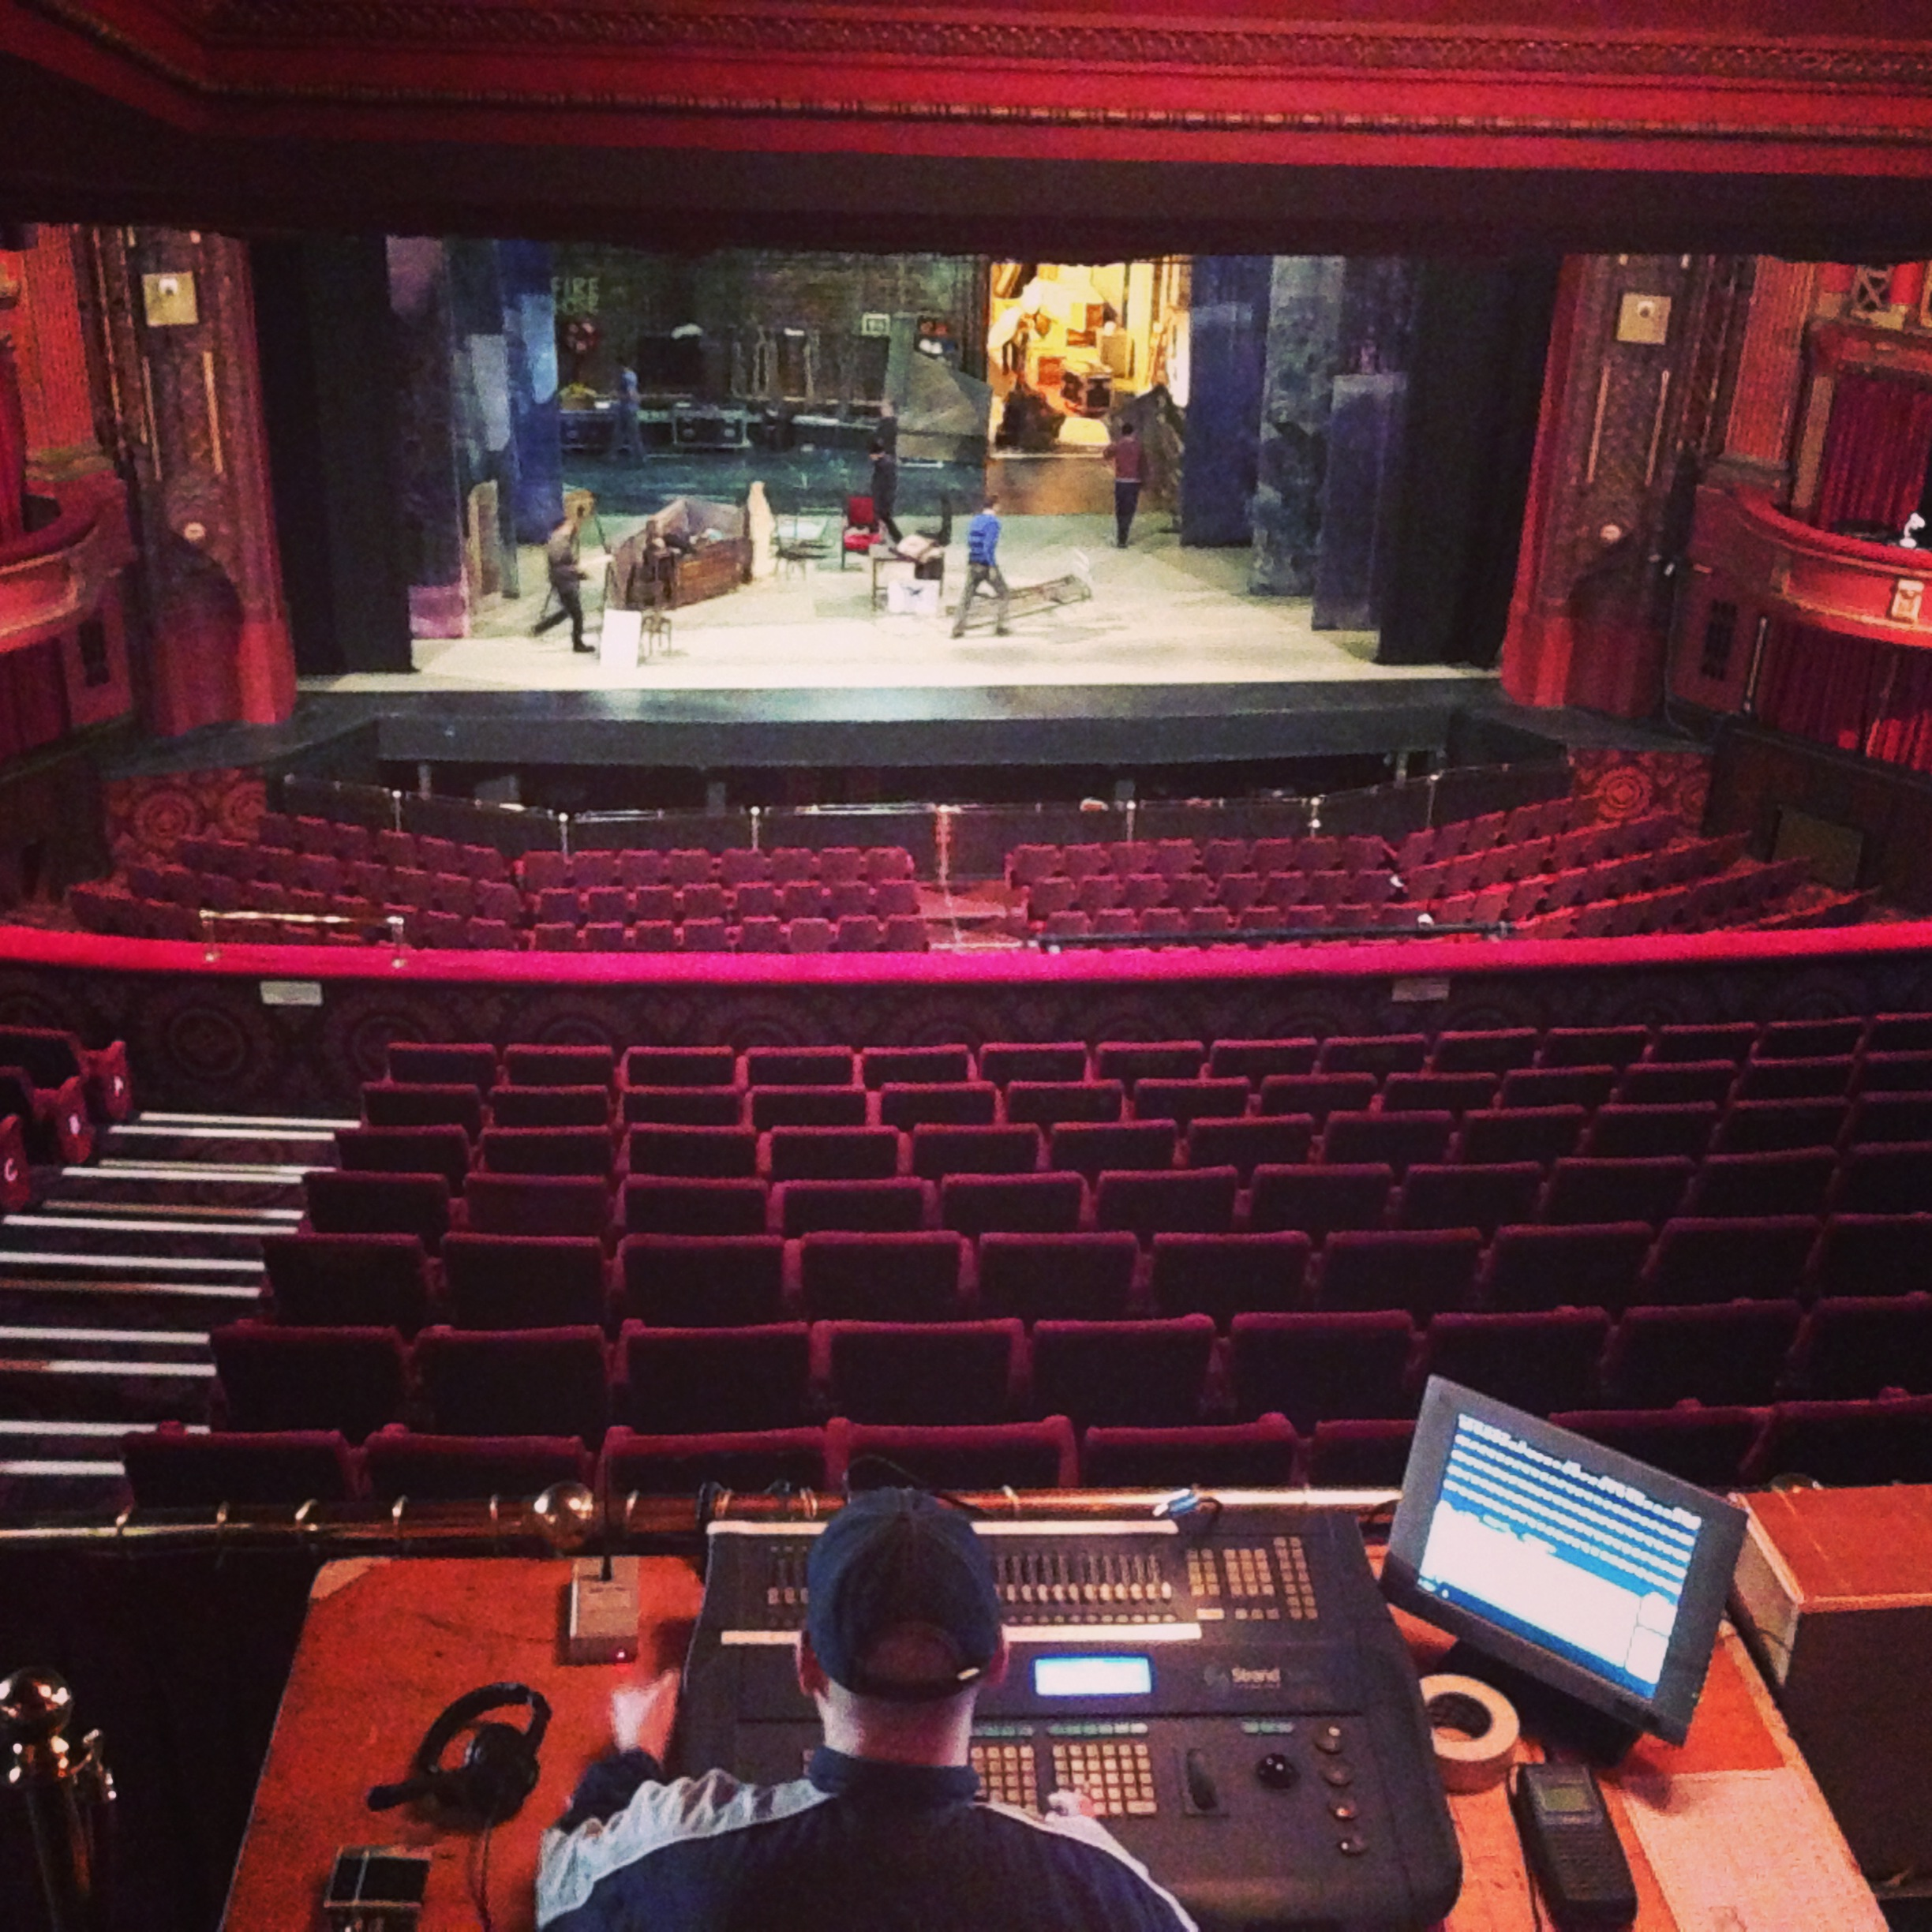 Edinburgh-Playhouse-Theatre-Tour-View-from-Directors-Box Edinburgh Playhouse Floor Plan on playhouse furniture plans, playhouse windows, playhouse bedroom plans, playhouse flooring, playhouse construction, playhouse design plans, playhouse stairs plans, playhouse wood plans, 2 story playhouse plans, girls playhouse plans, playhouse deck plans, playhouse interiors, playhouse bed plans, custom playhouse plans, playhouse on the mall, playhouse size lincoln logs, a frame playhouse plans, simple playhouse plans, playhouse lighting, playhouse doors,